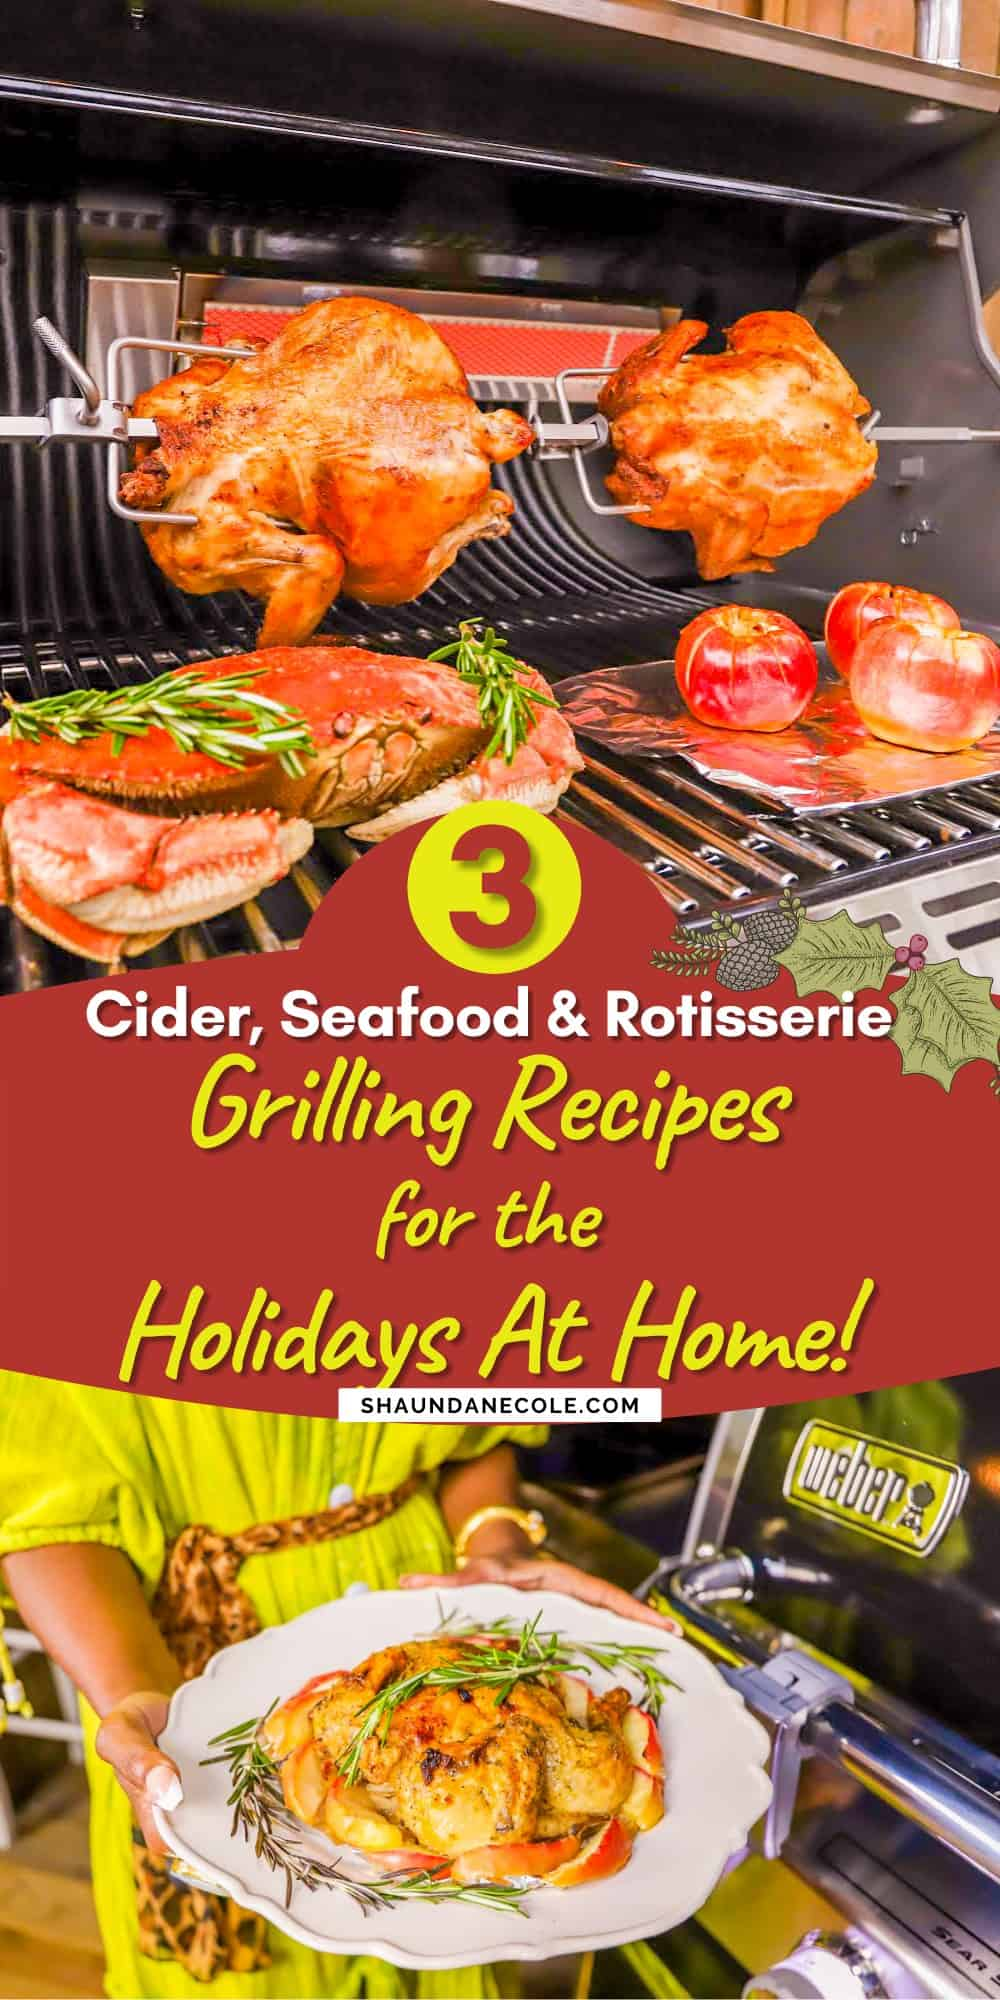 Weber Grill Recipes For The Holidays At Home